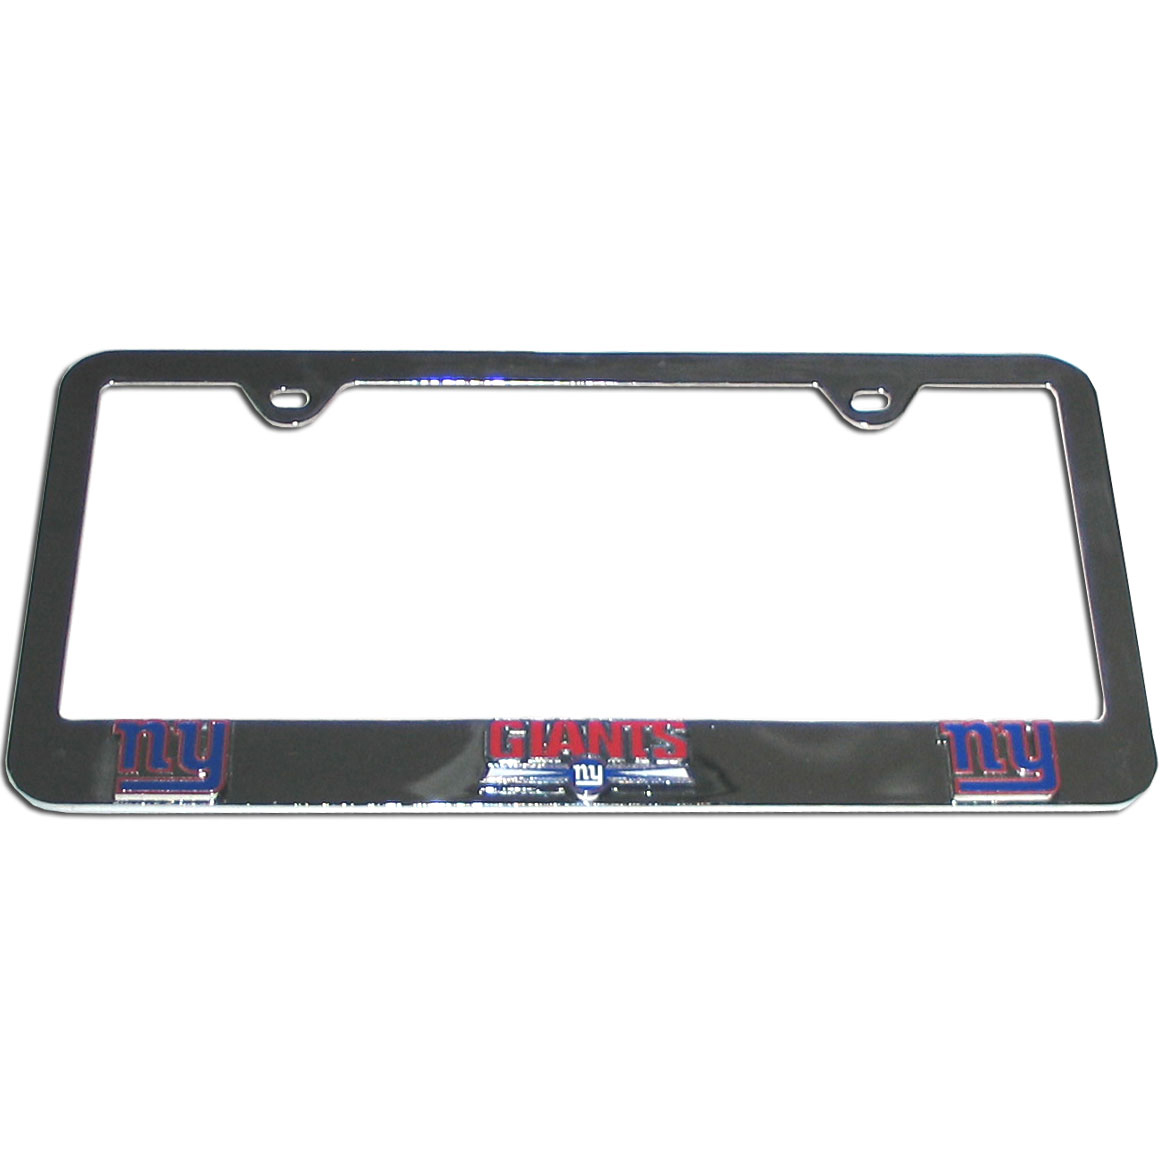 New York Giants Official NFL License Plate Frame by Siskiyou 385711